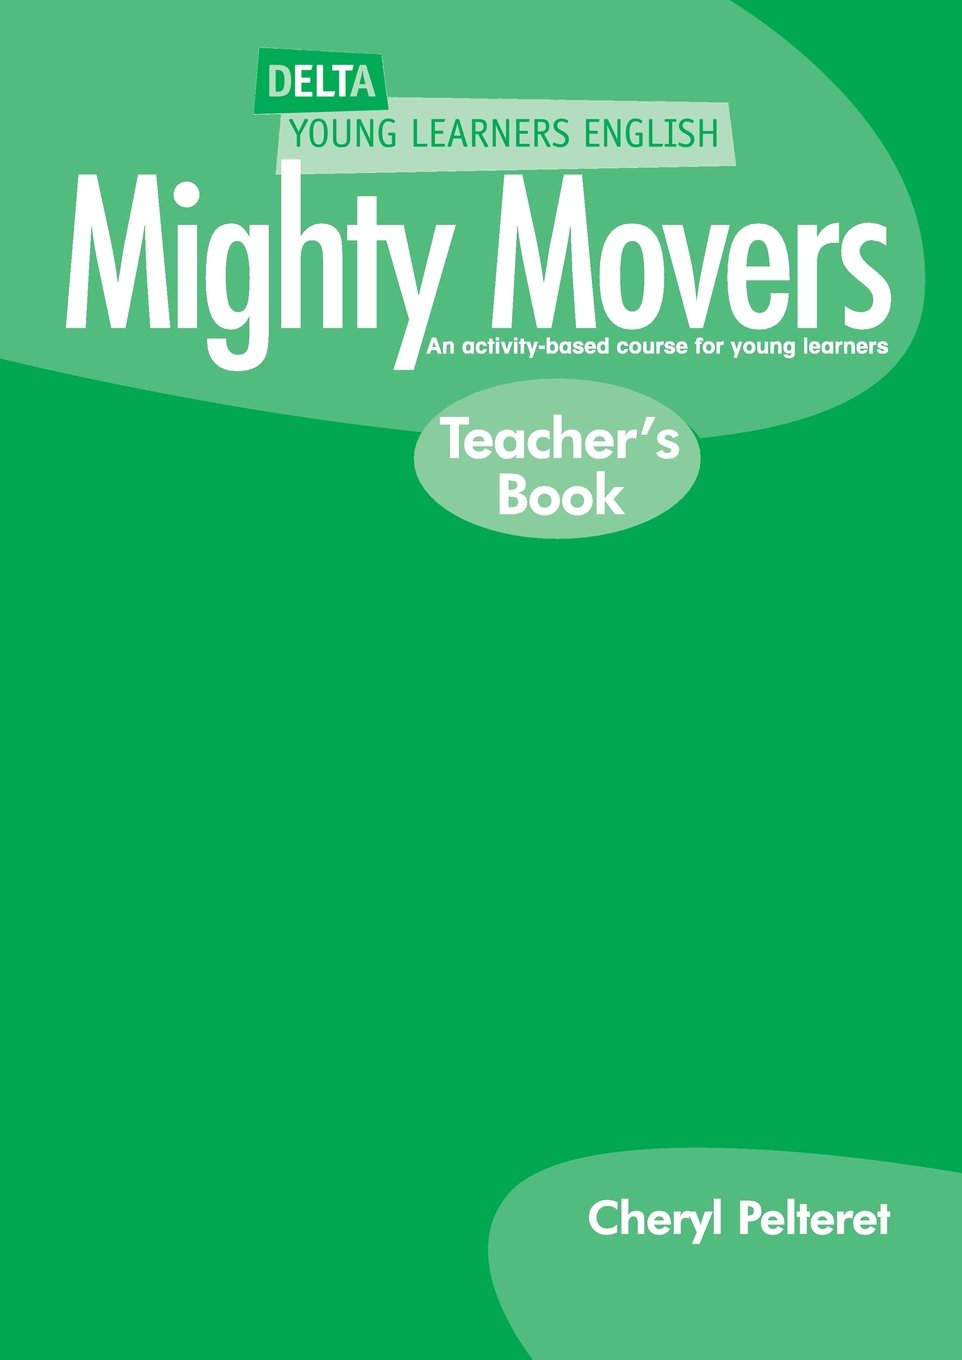 DELTA MIGHTY MOVERS Teacher's Book